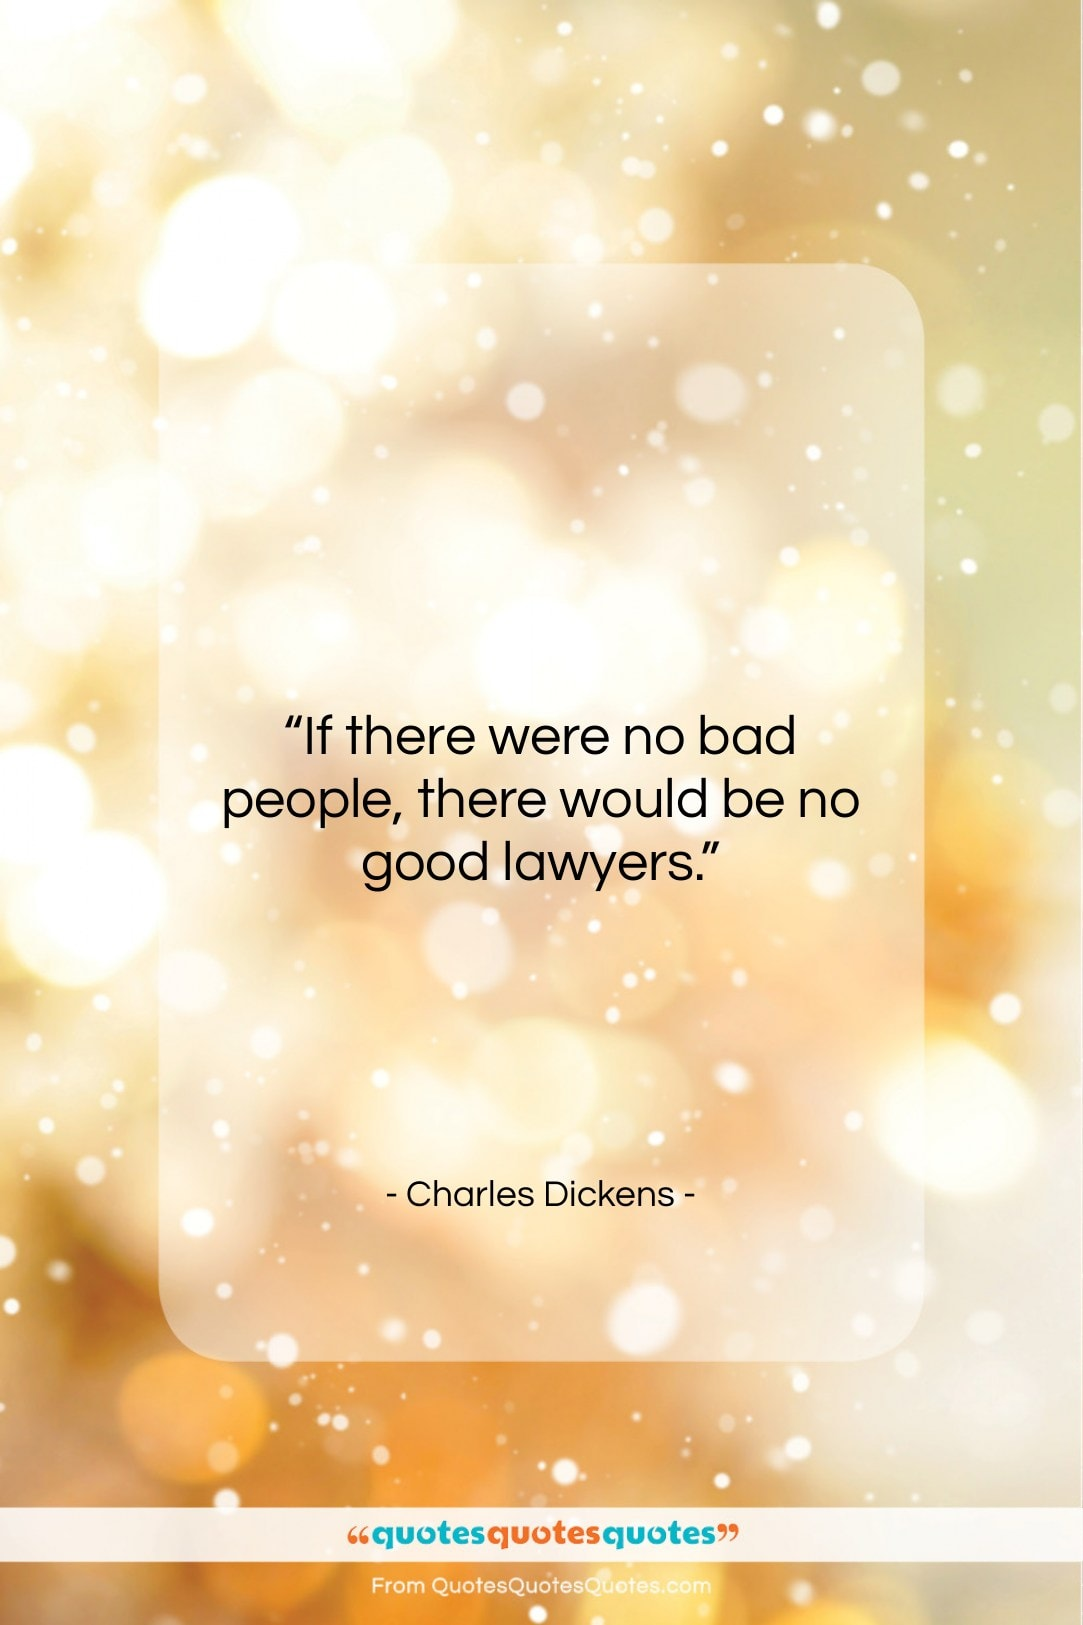 Get The Whole Charles Dickens Quote If There Were No Bad People